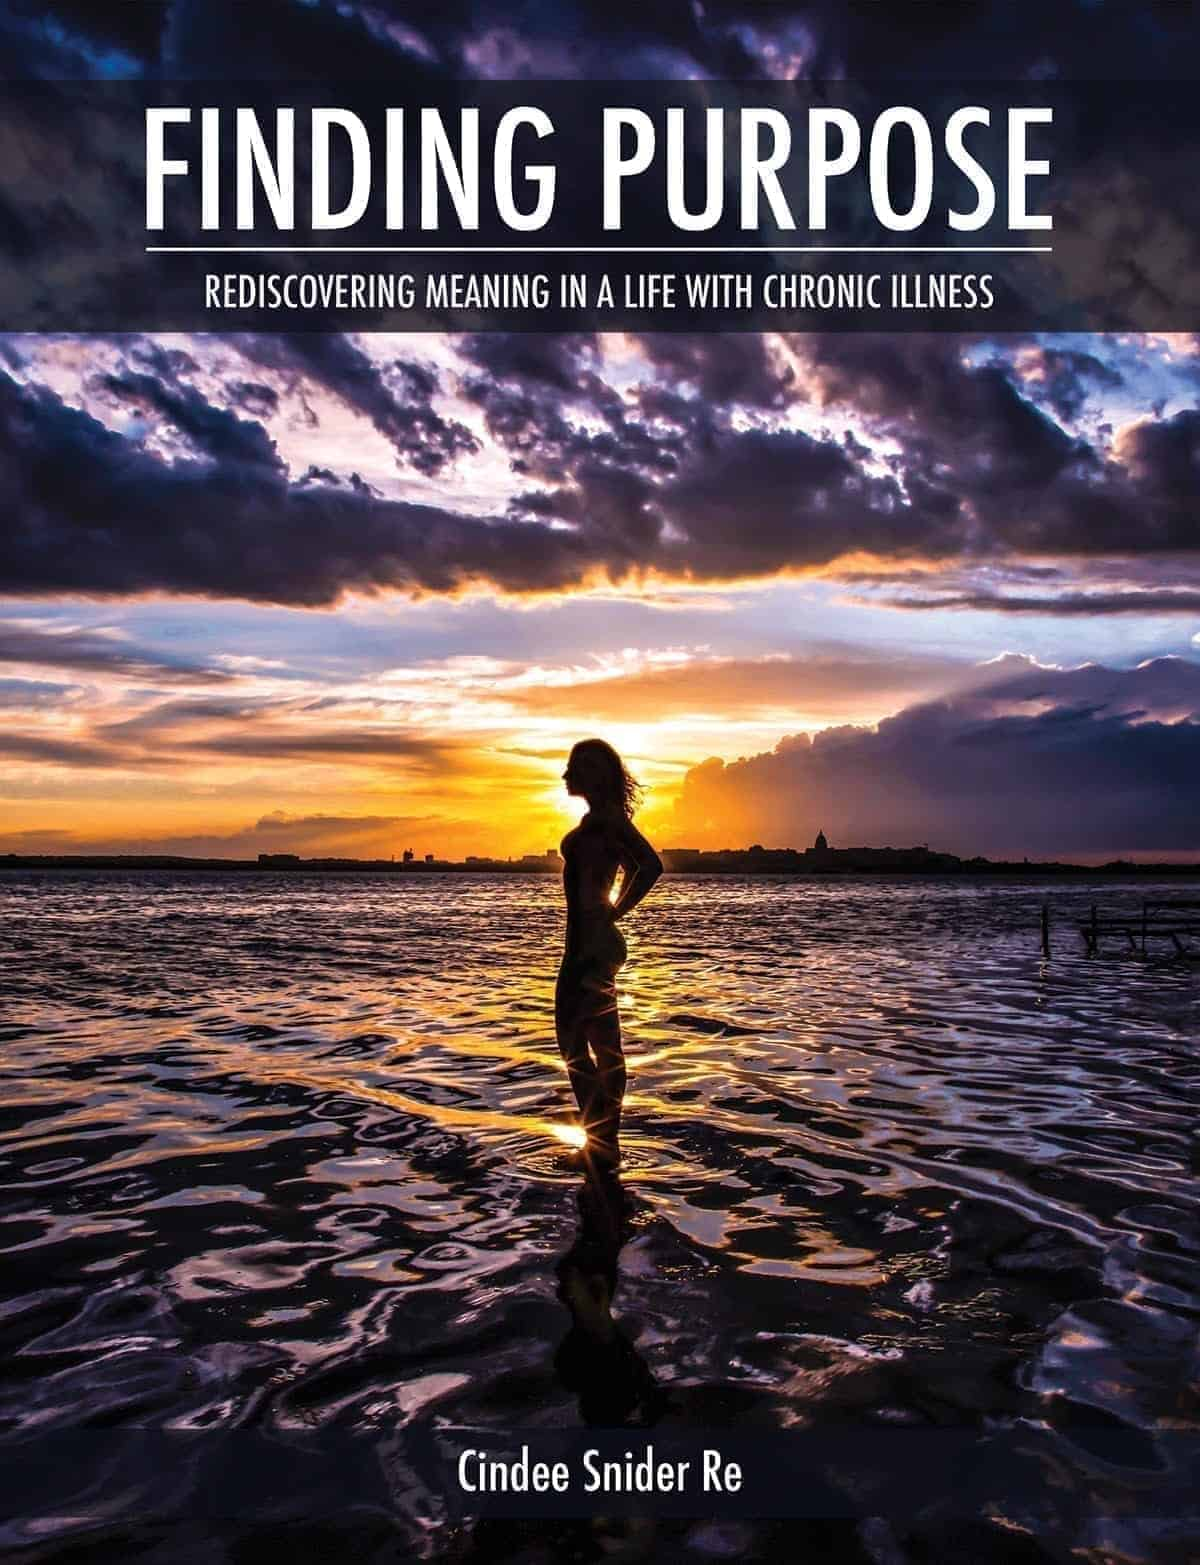 Finding Purpose: Rediscovering Meaning in a Life with Chronic Illness